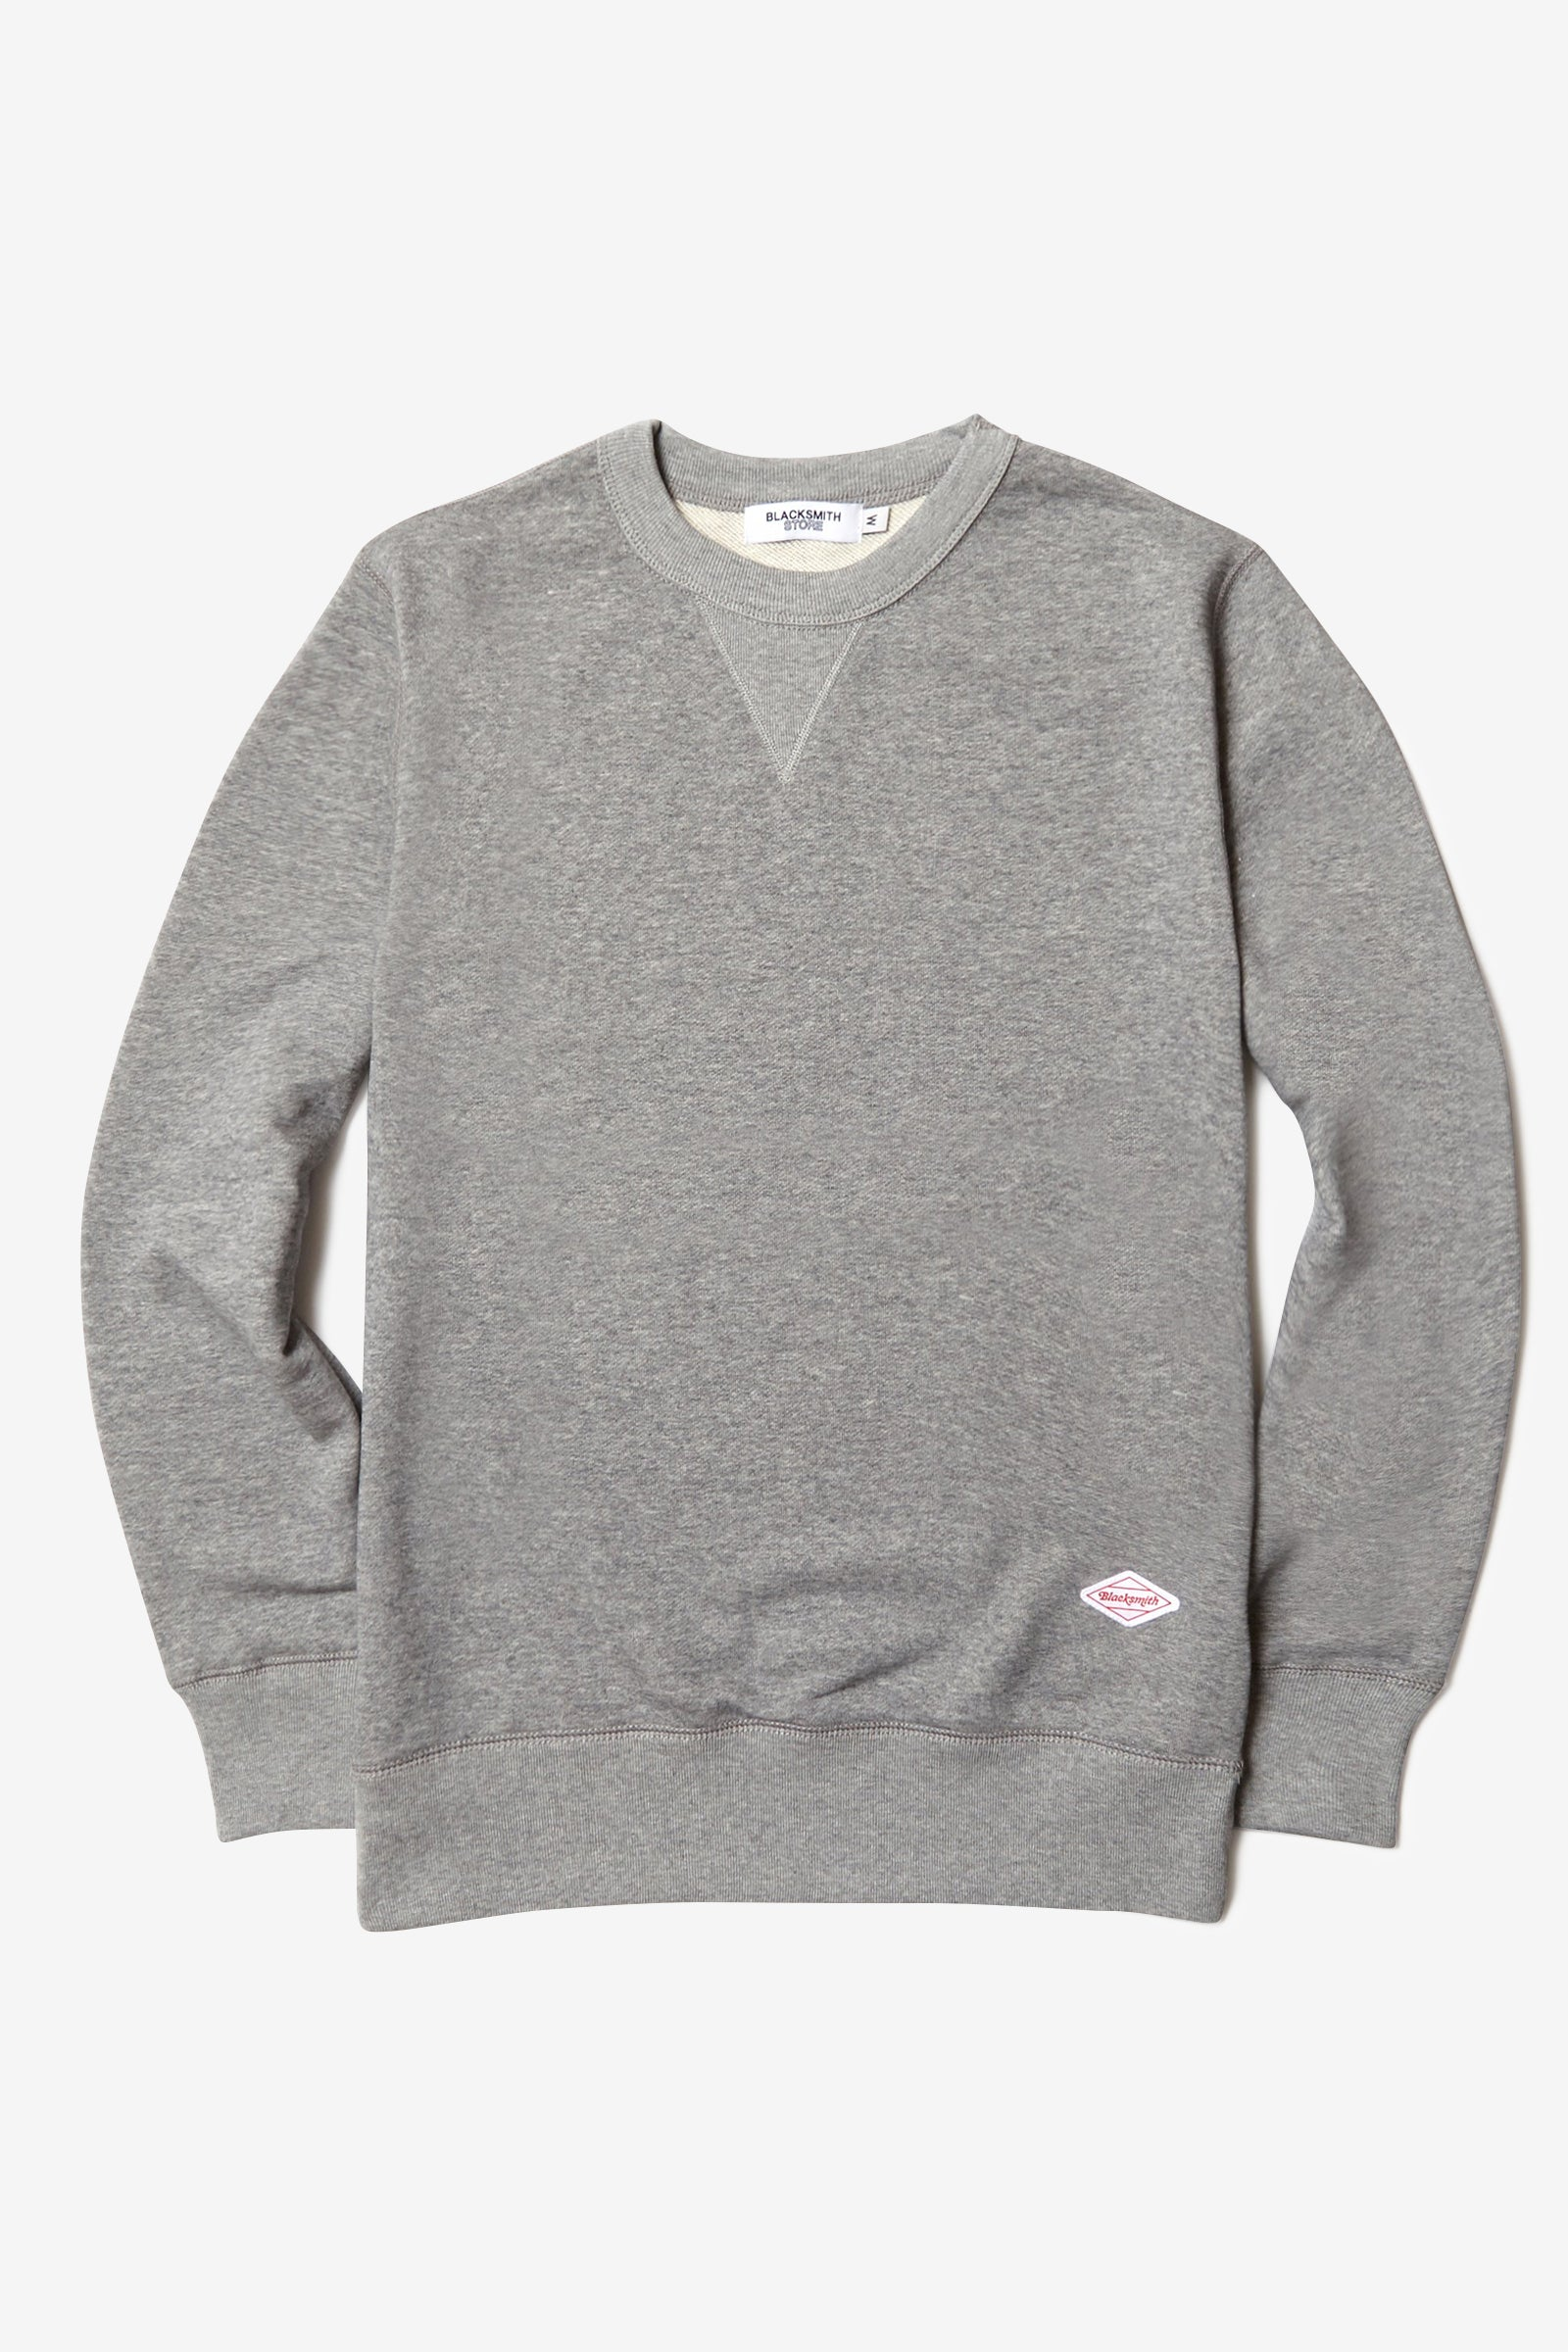 Blacksmith - Loopback Everyday Crewneck - Heather Grey